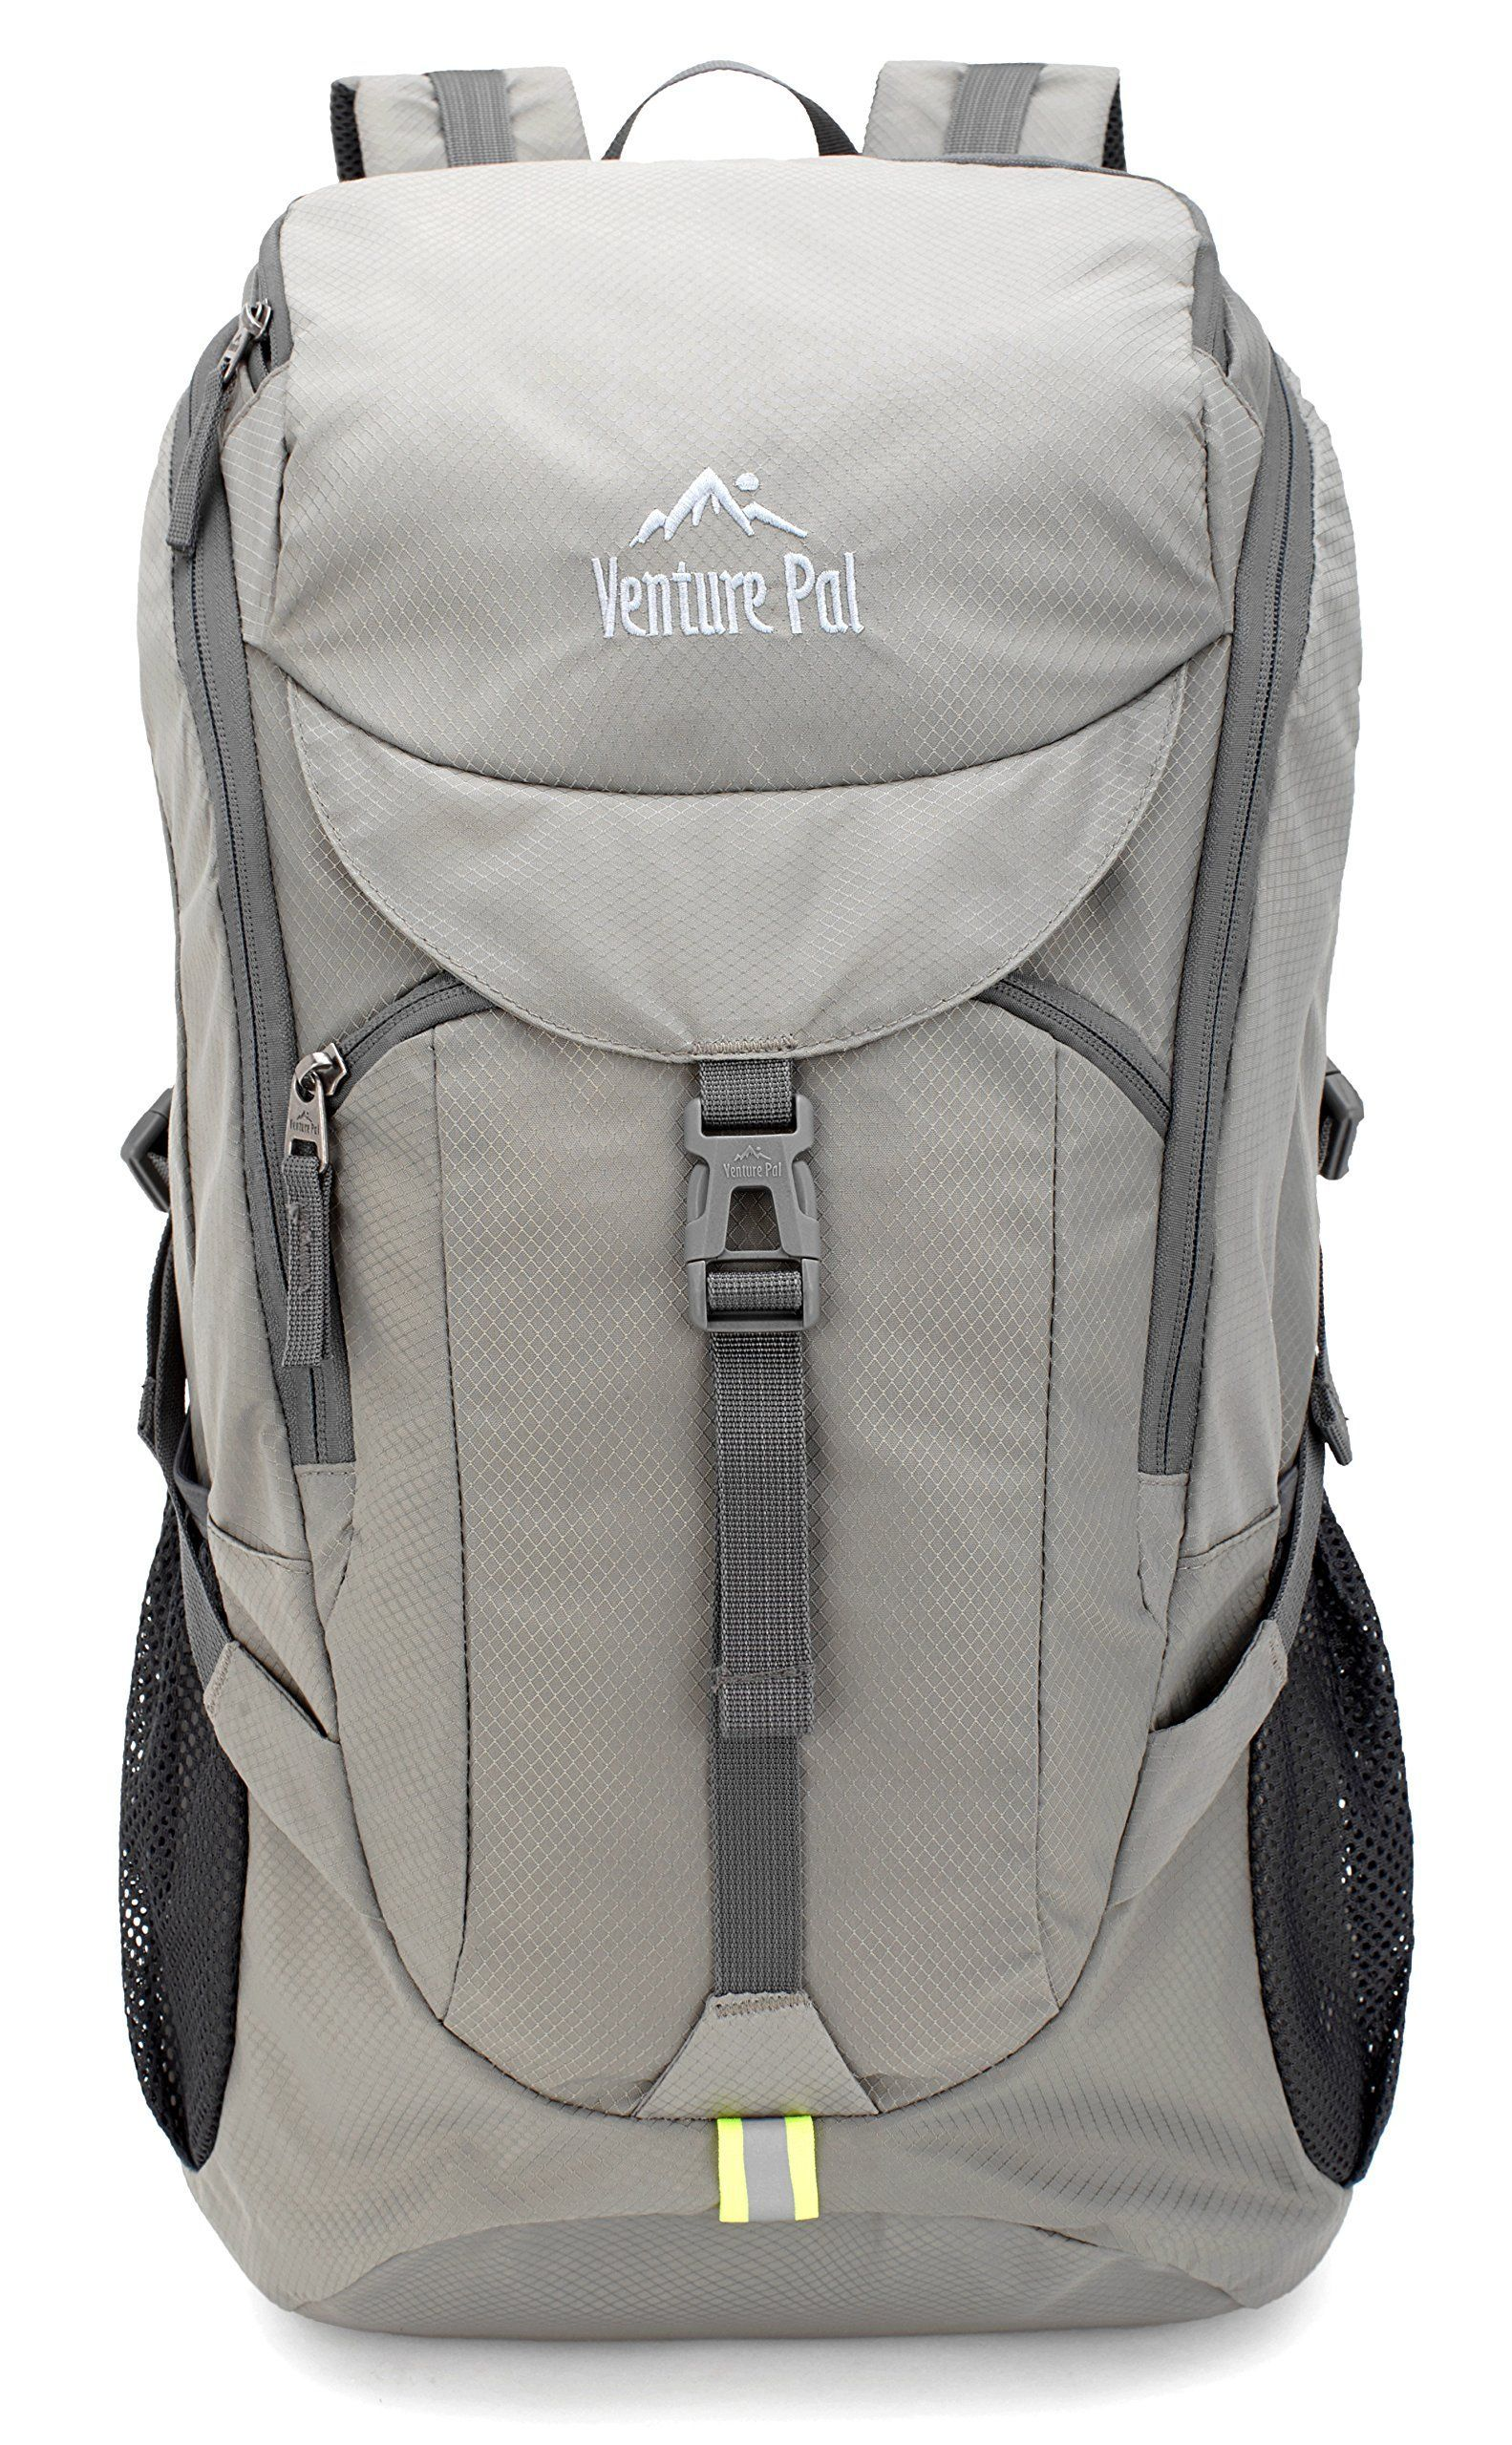 e3d71d75360b Venture Pal 50L Large Hiking Backpack - Durable Packable Lightweight ...